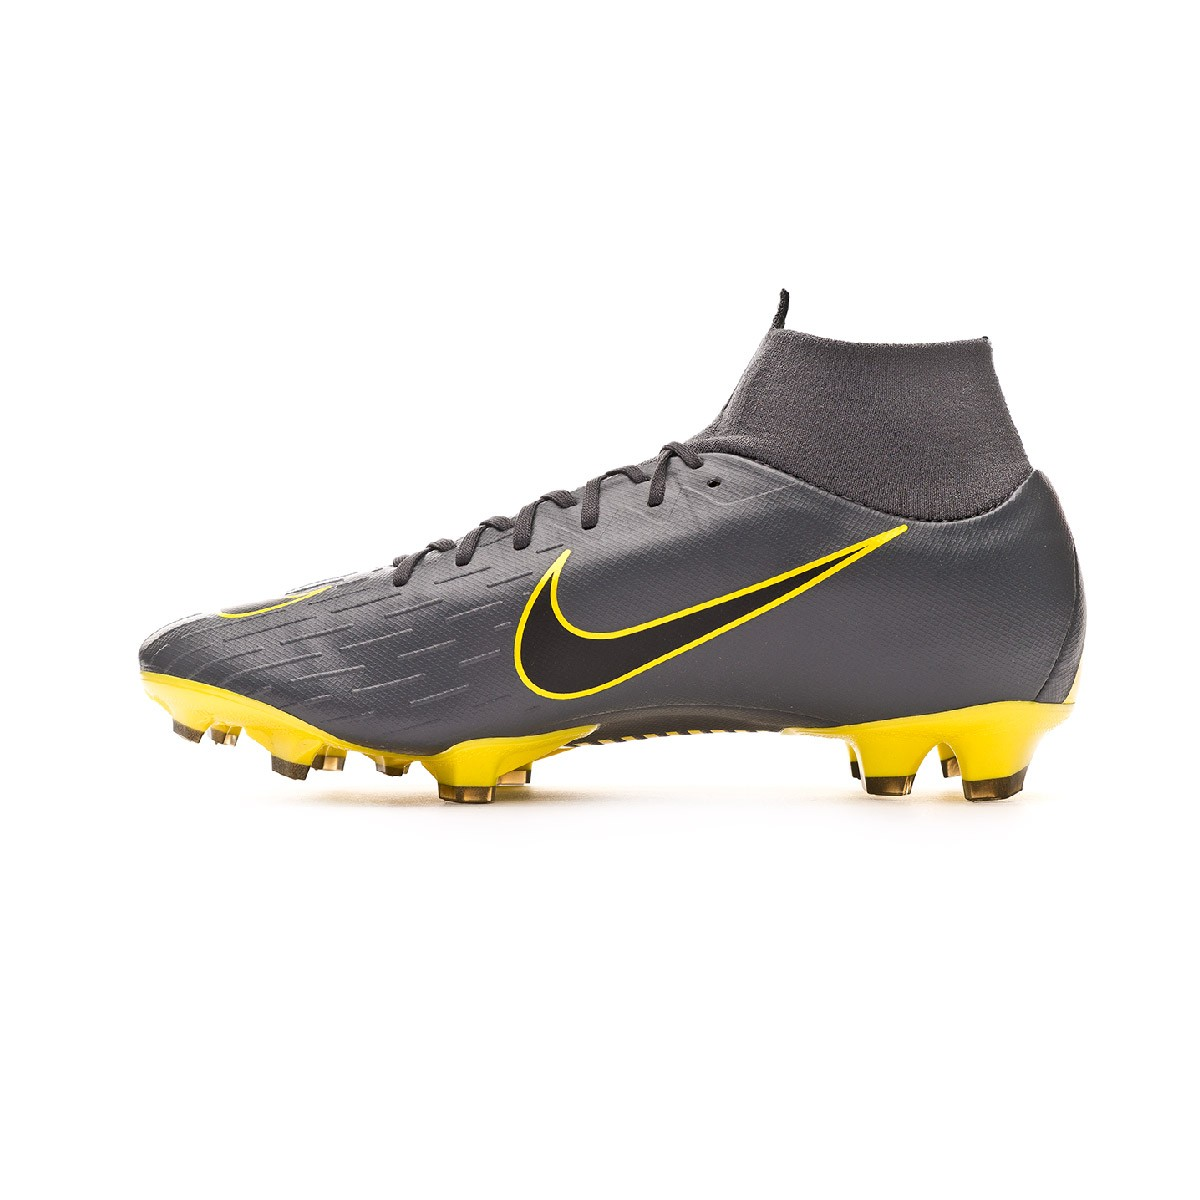 6b48d003d0e3 Football Boots Nike Mercurial Superfly VI Pro FG Dark grey-Black-Optical  yellow - Football store Fútbol Emotion